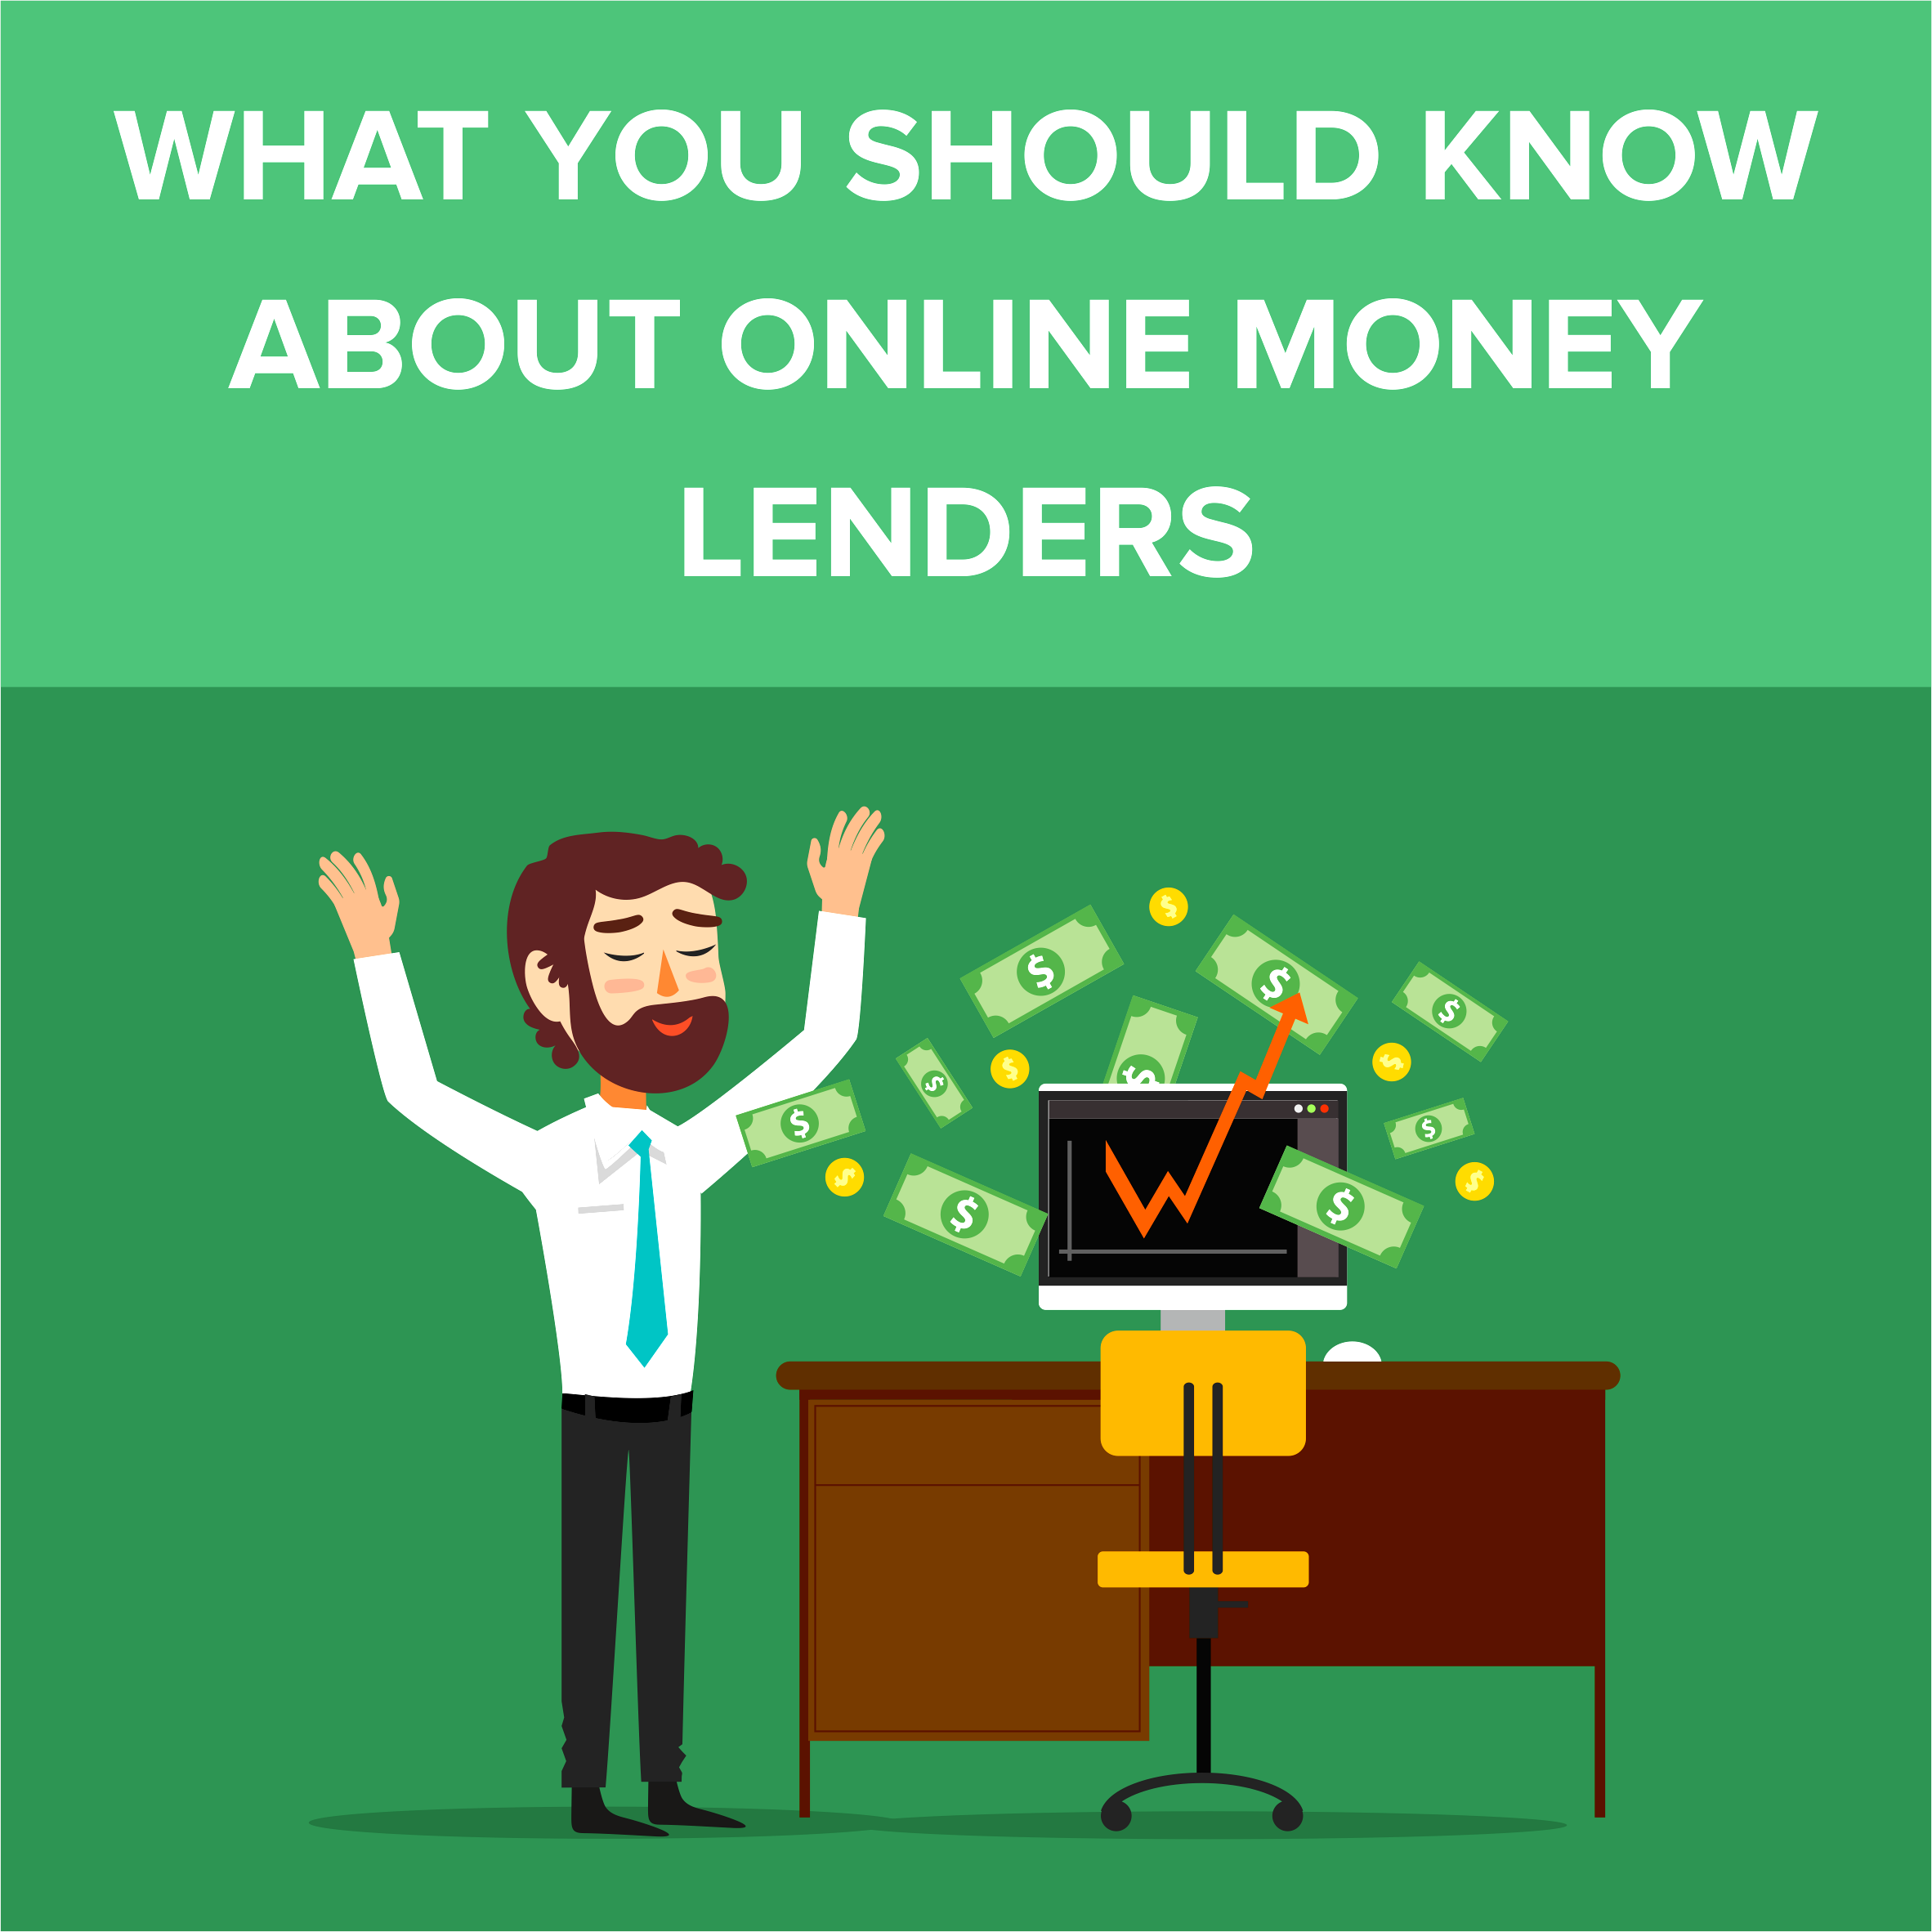 What You Should Know About Online Money Lenders